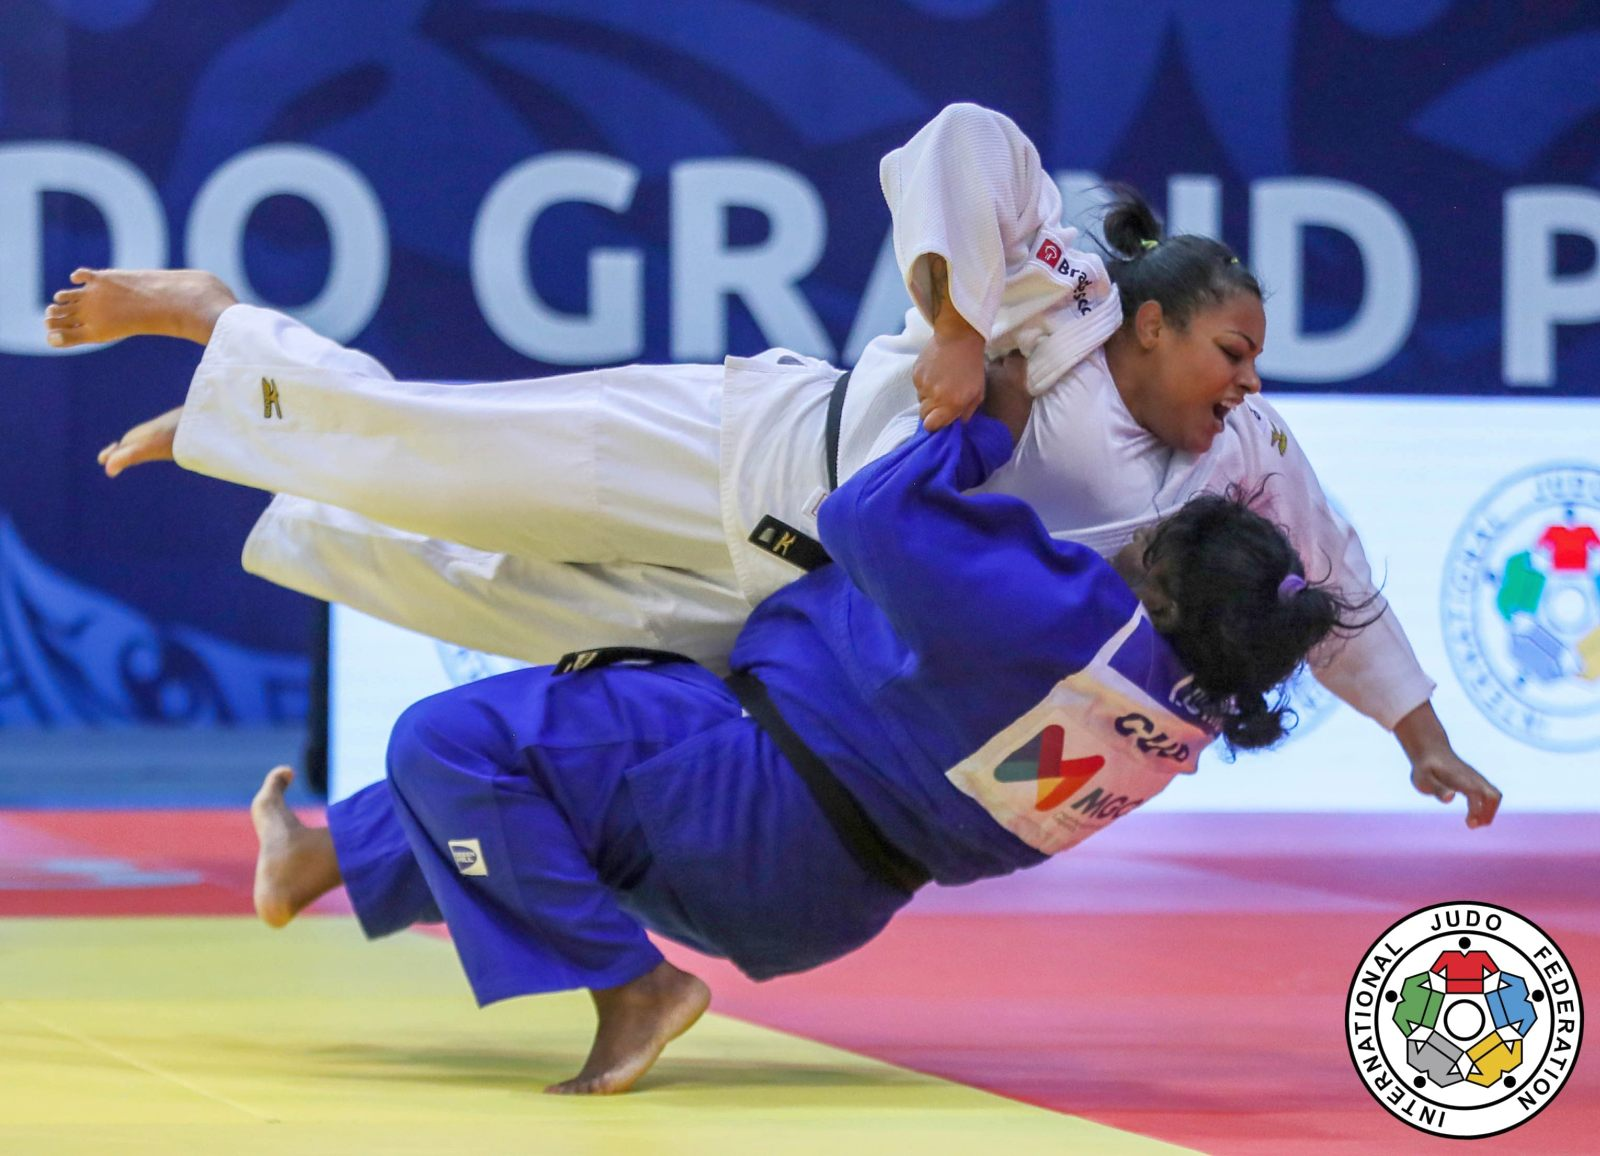 20181014_ijf_cancun_79_final_altheman_maria_suelen_vs_ortiz_idalys_1